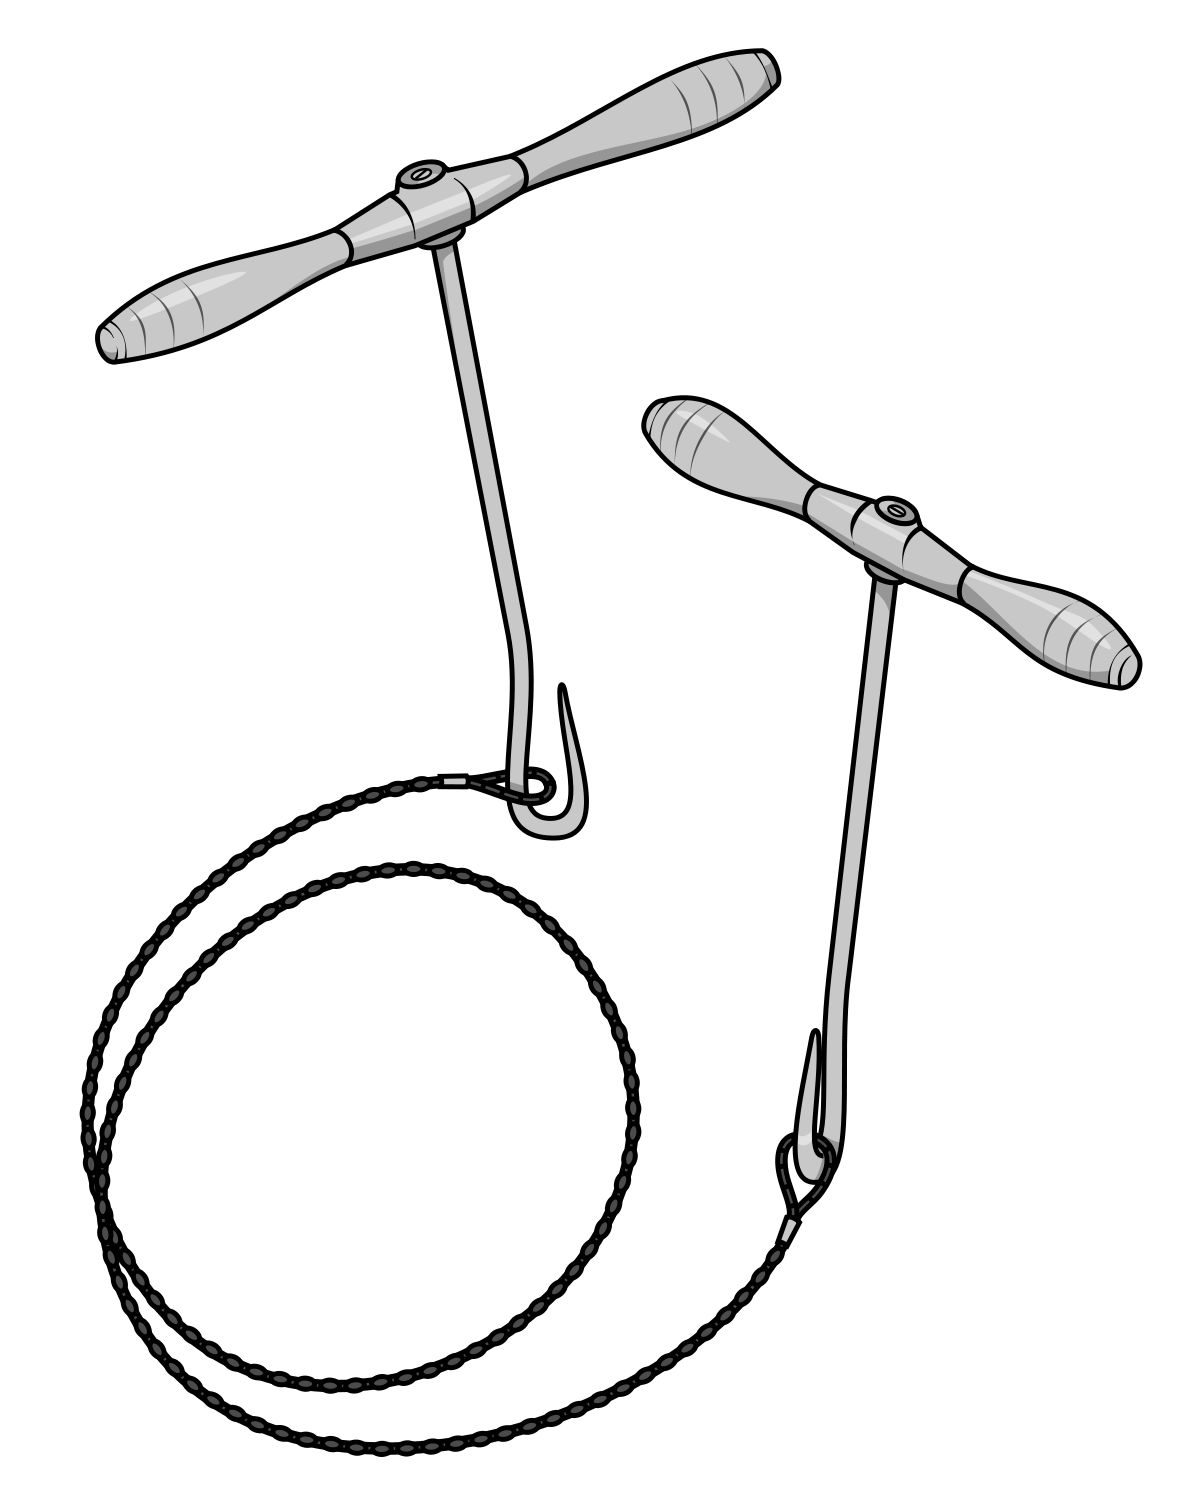 surgeon drawing surgical tool